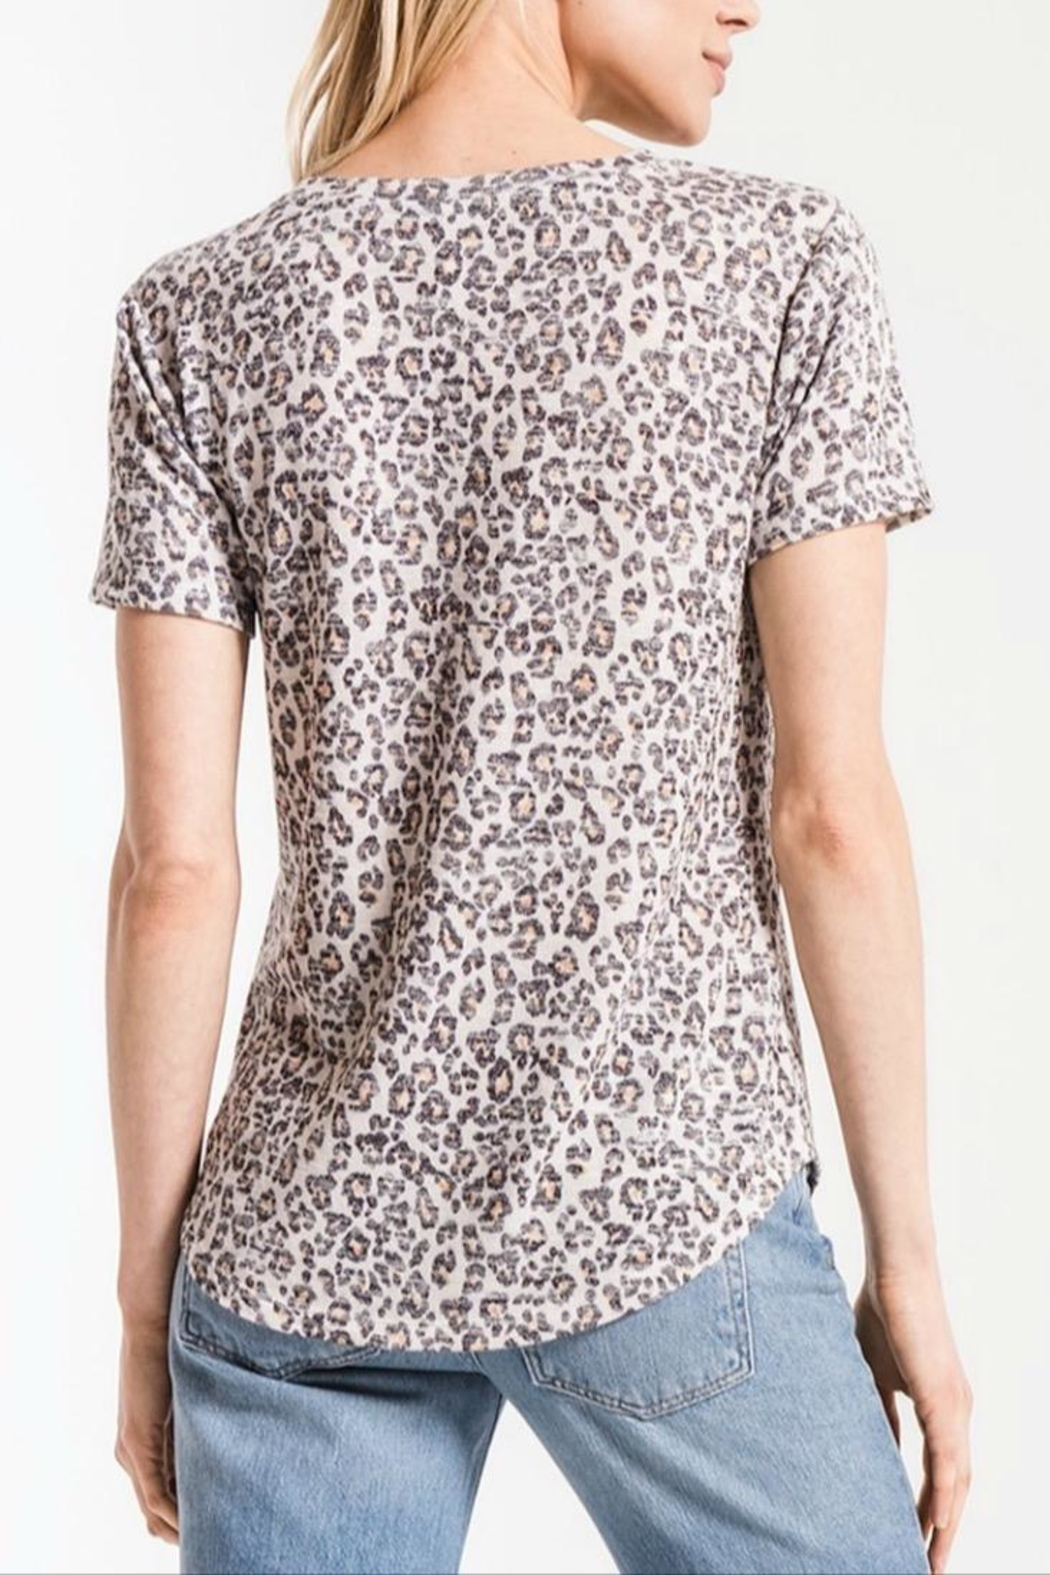 z supply Soft Leopard Tee - Front Full Image